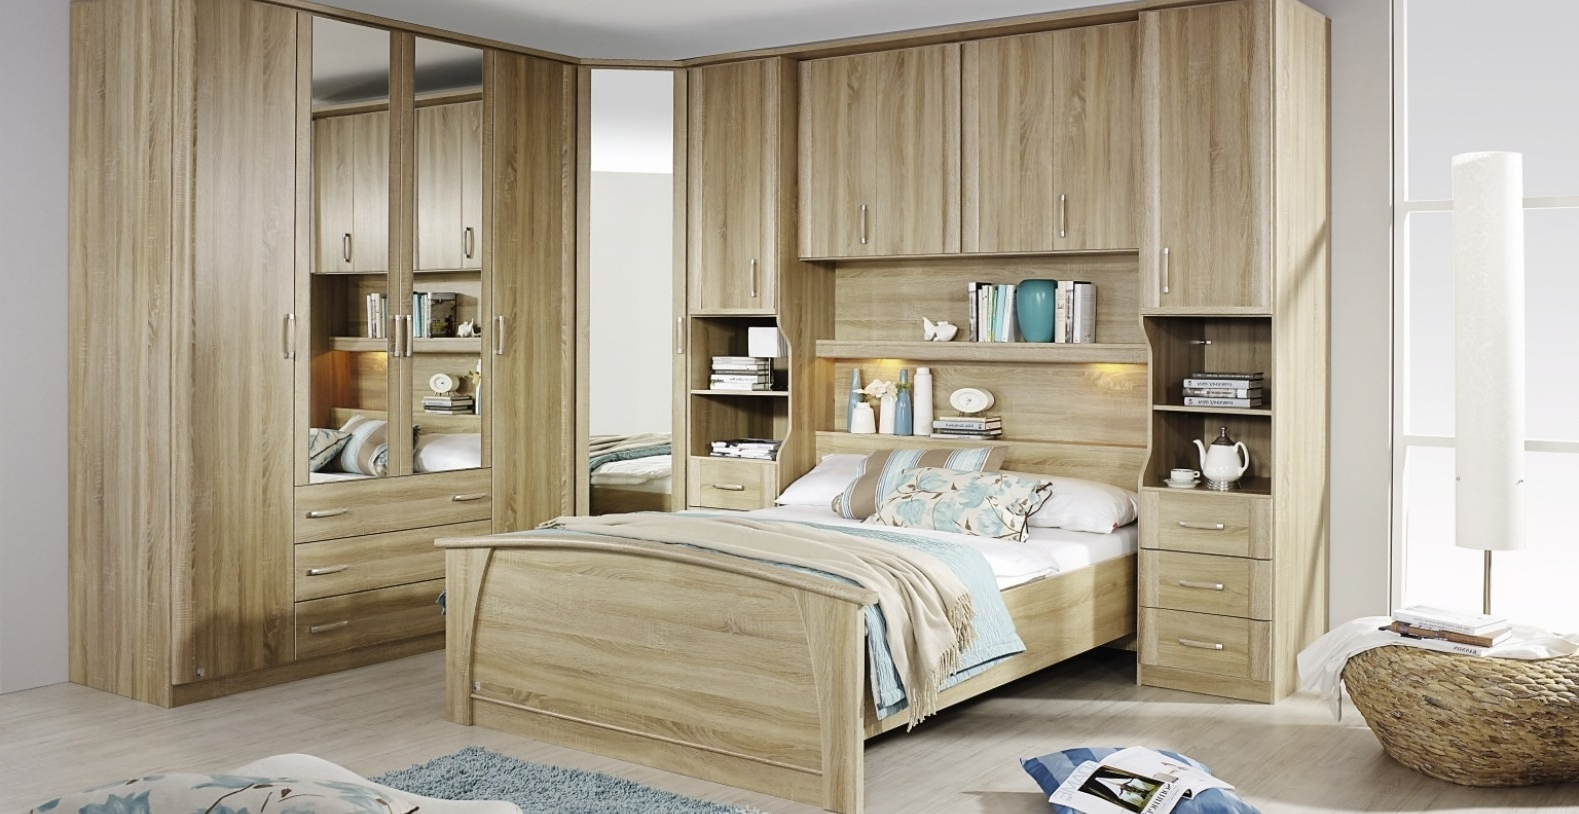 Most Current Over Bed Wardrobes Sets In Unique Over Bed Wardrobe Set – Badotcom (View 8 of 15)